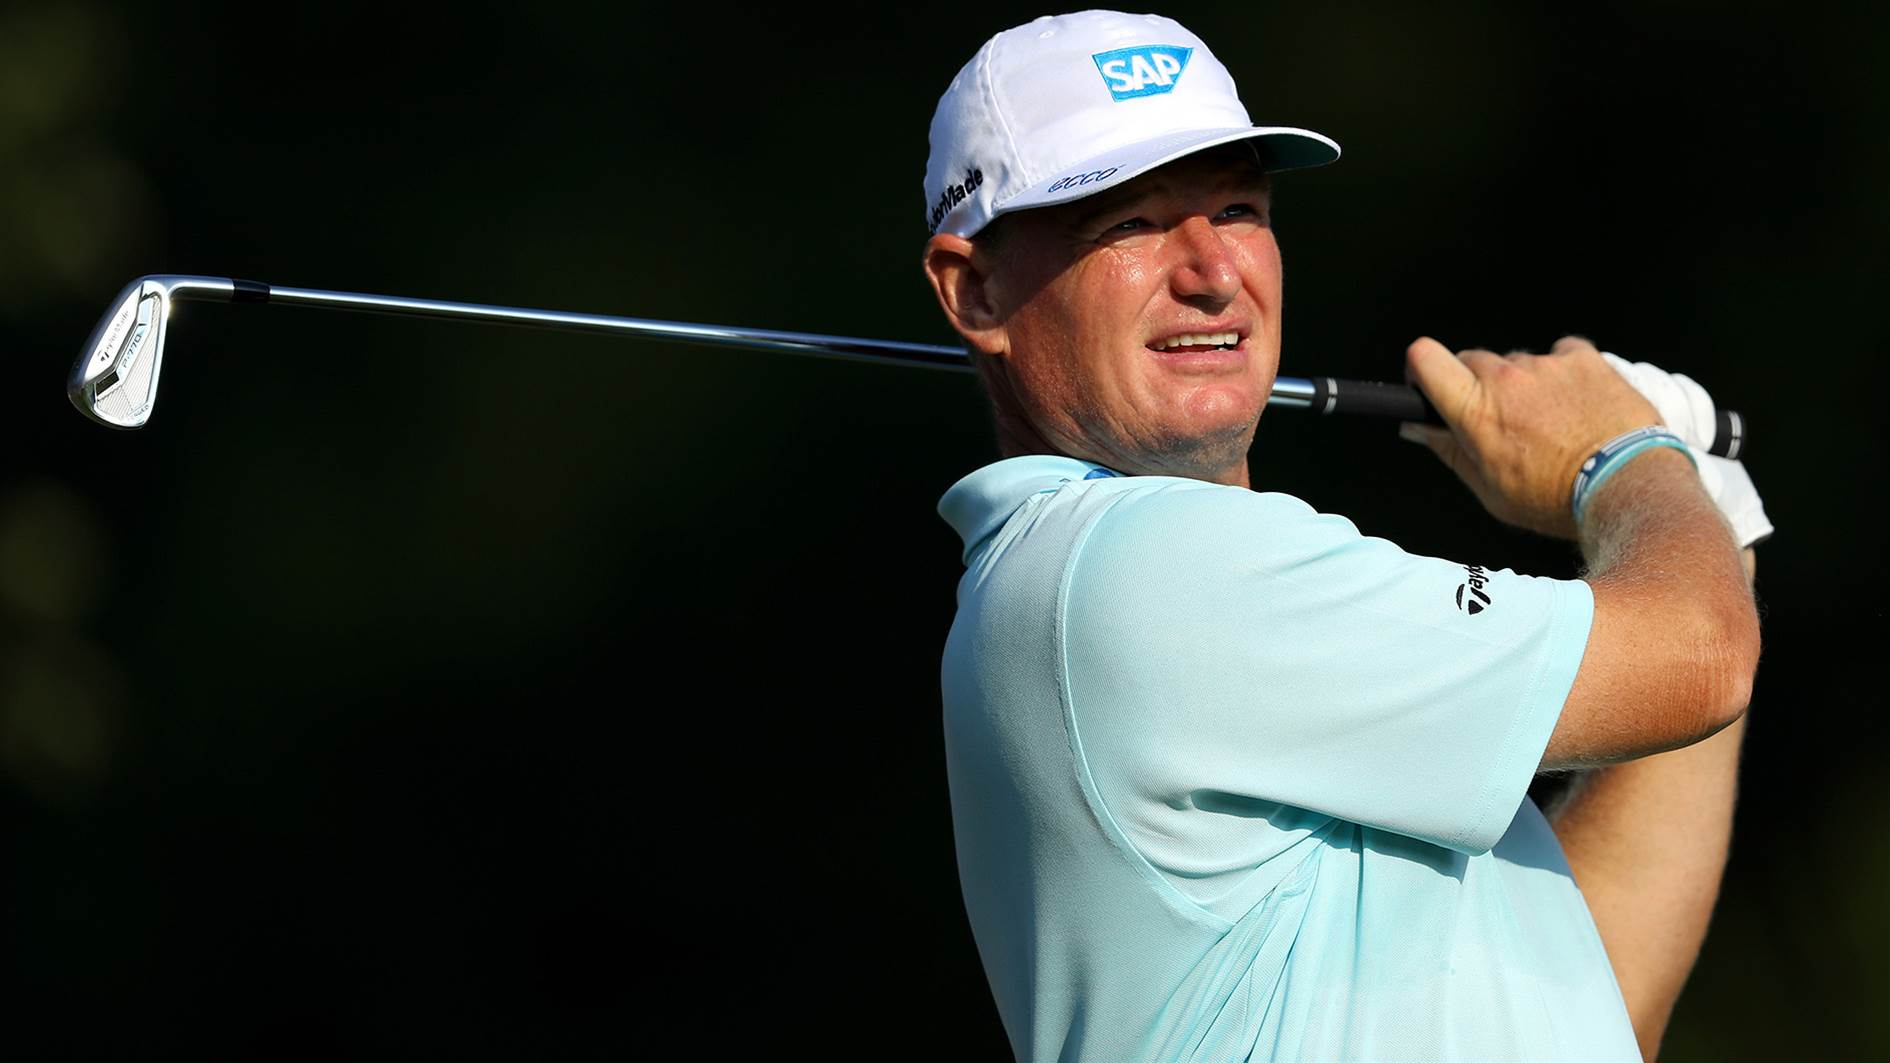 THE BIG INTERVIEW: Ernie Els